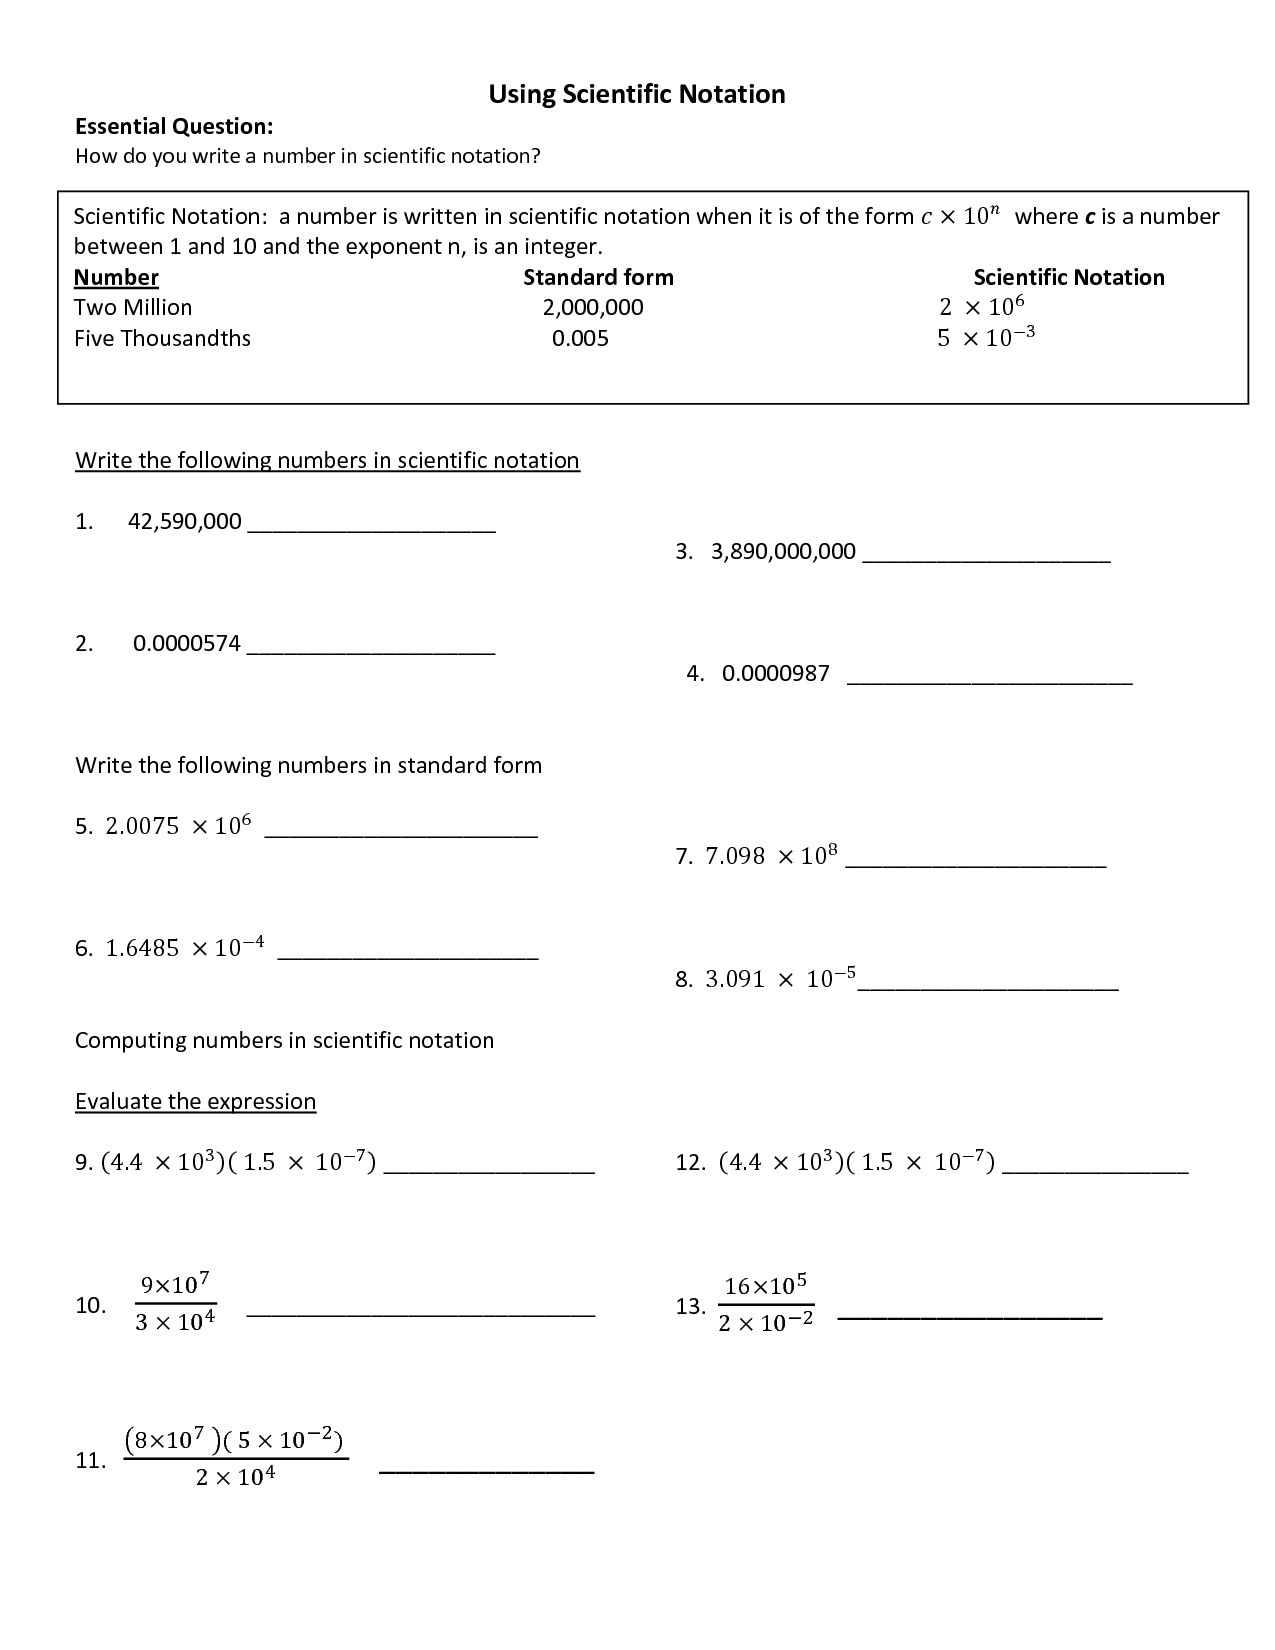 Worksheet Scientific Notation Part 2 Answers